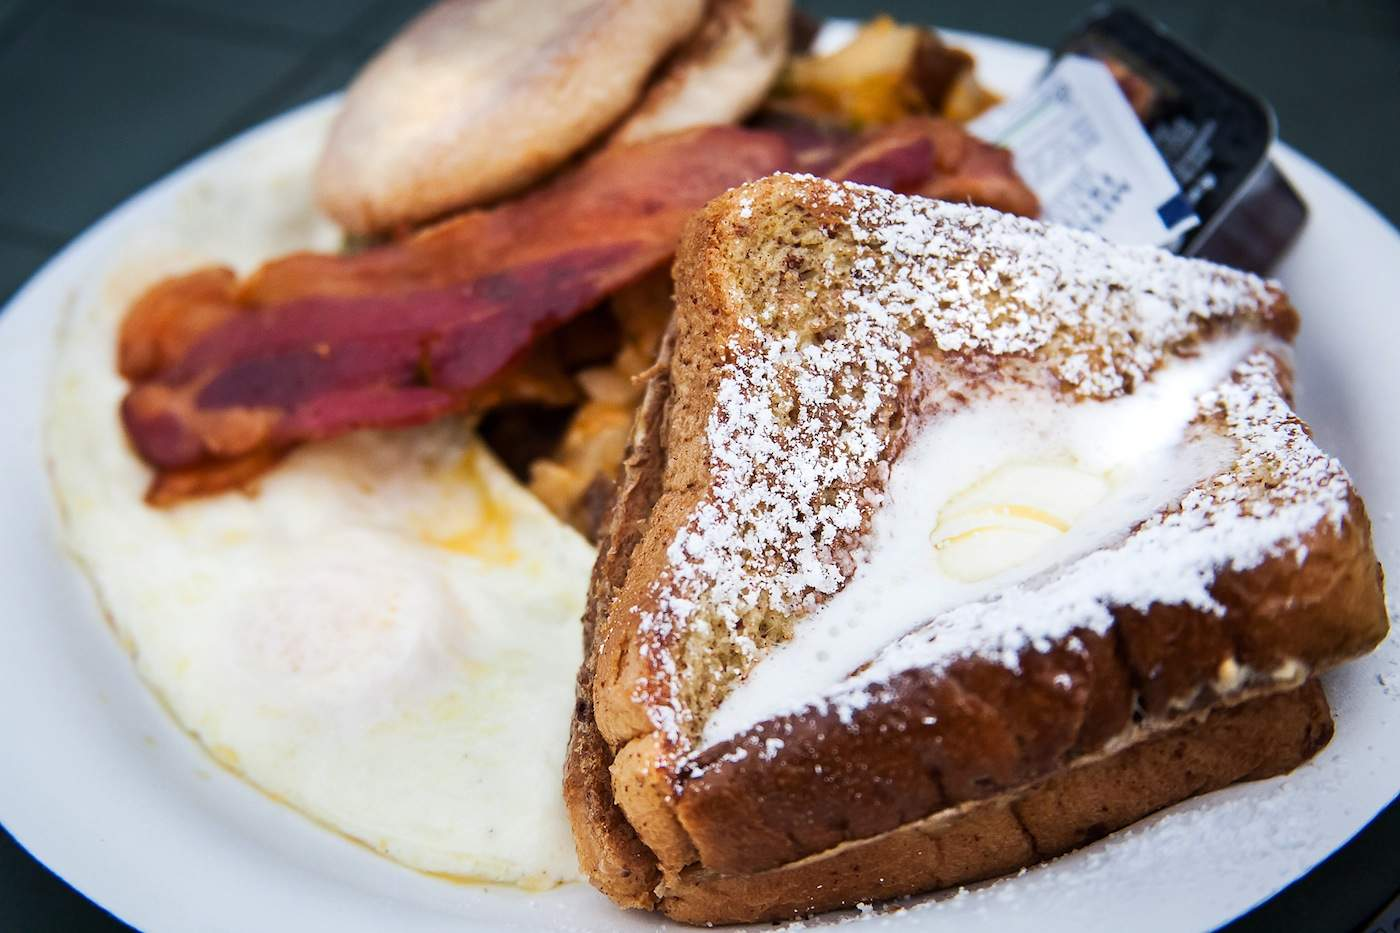 The World's Best Breakfast: Which Country's Morning Meal Is Tops?